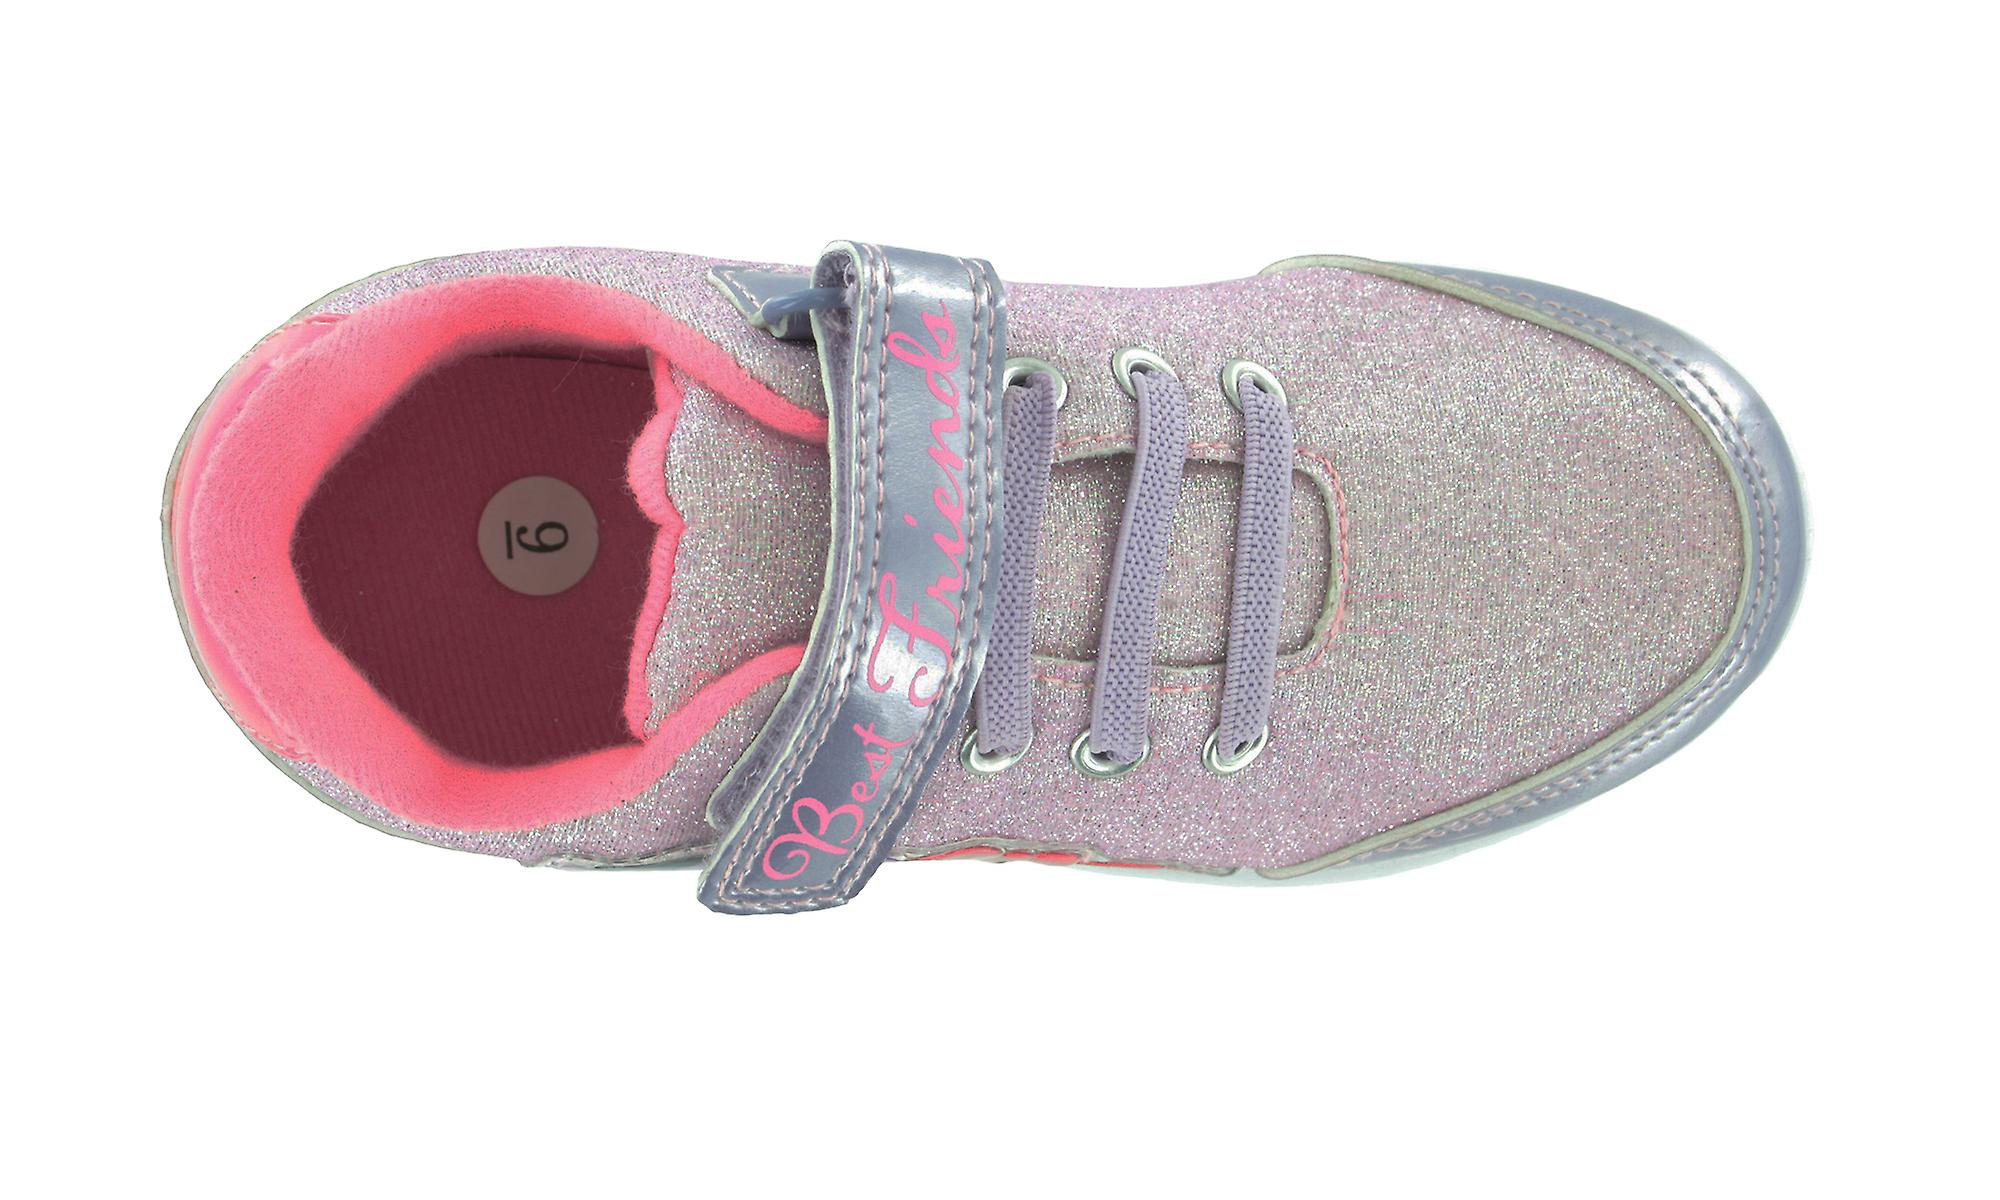 Girls MLP My Little Pony Glitter Pink Hook & Loop Trainers Joggers Shoes UK Sizes 6 - 12